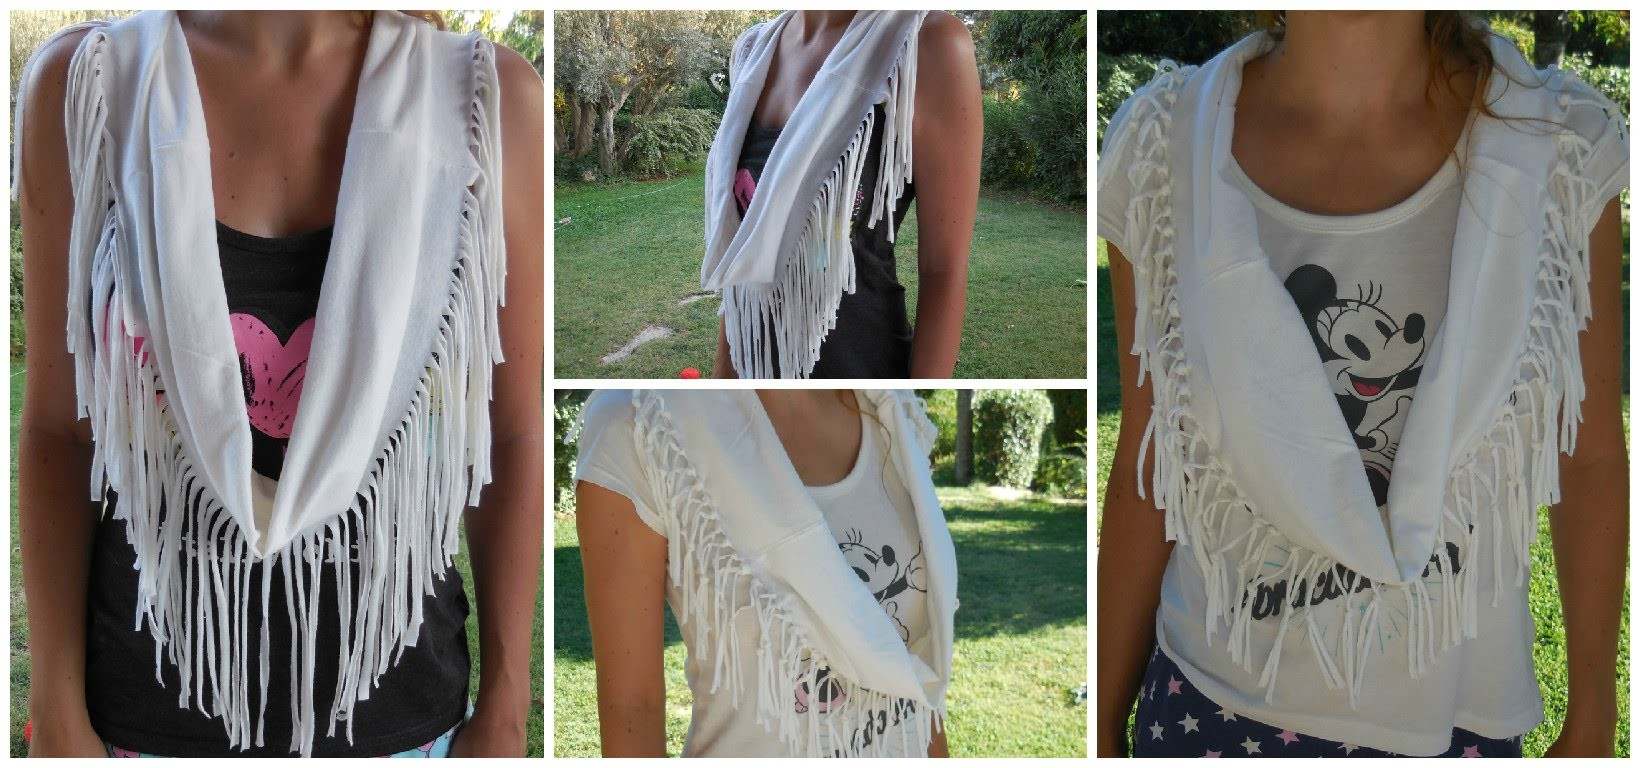 [ DIY ] ✂ Foulard à franges avec un tee-shirt. Fringe scarf from t-shirt